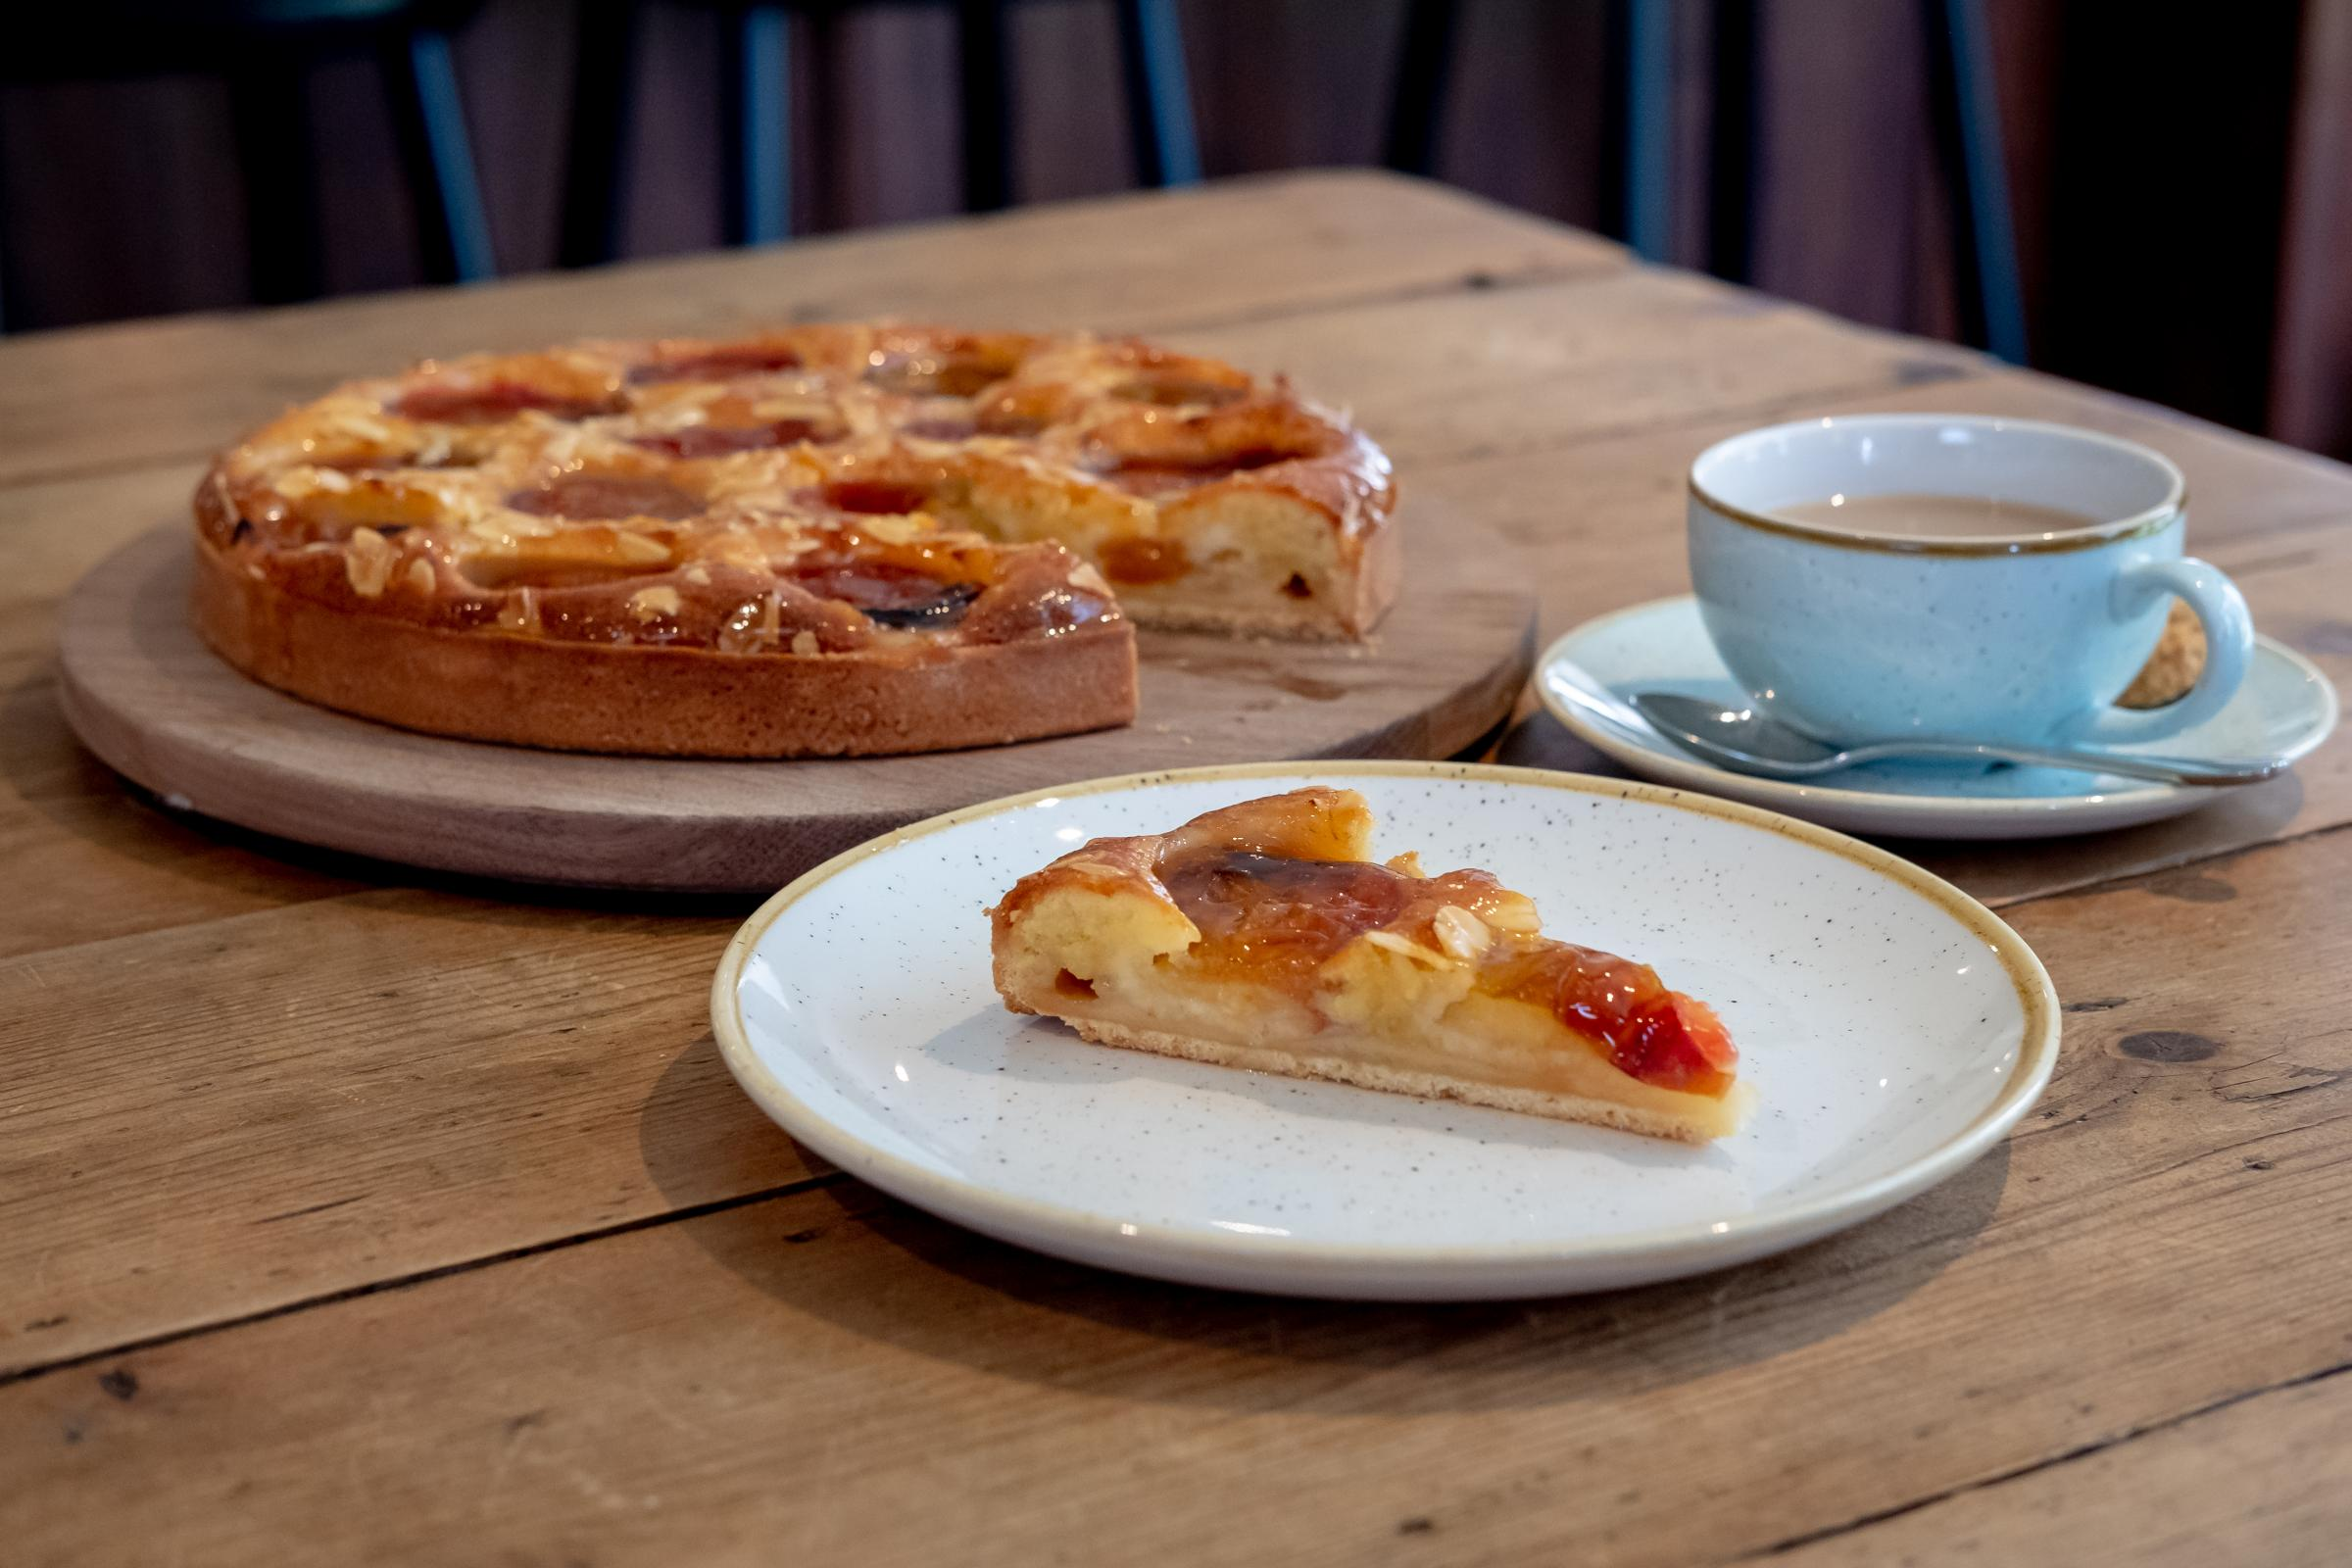 Victoria Plum and Almond Tart by Phil Skinazi, Executive Pastry Chef at Gleneagles